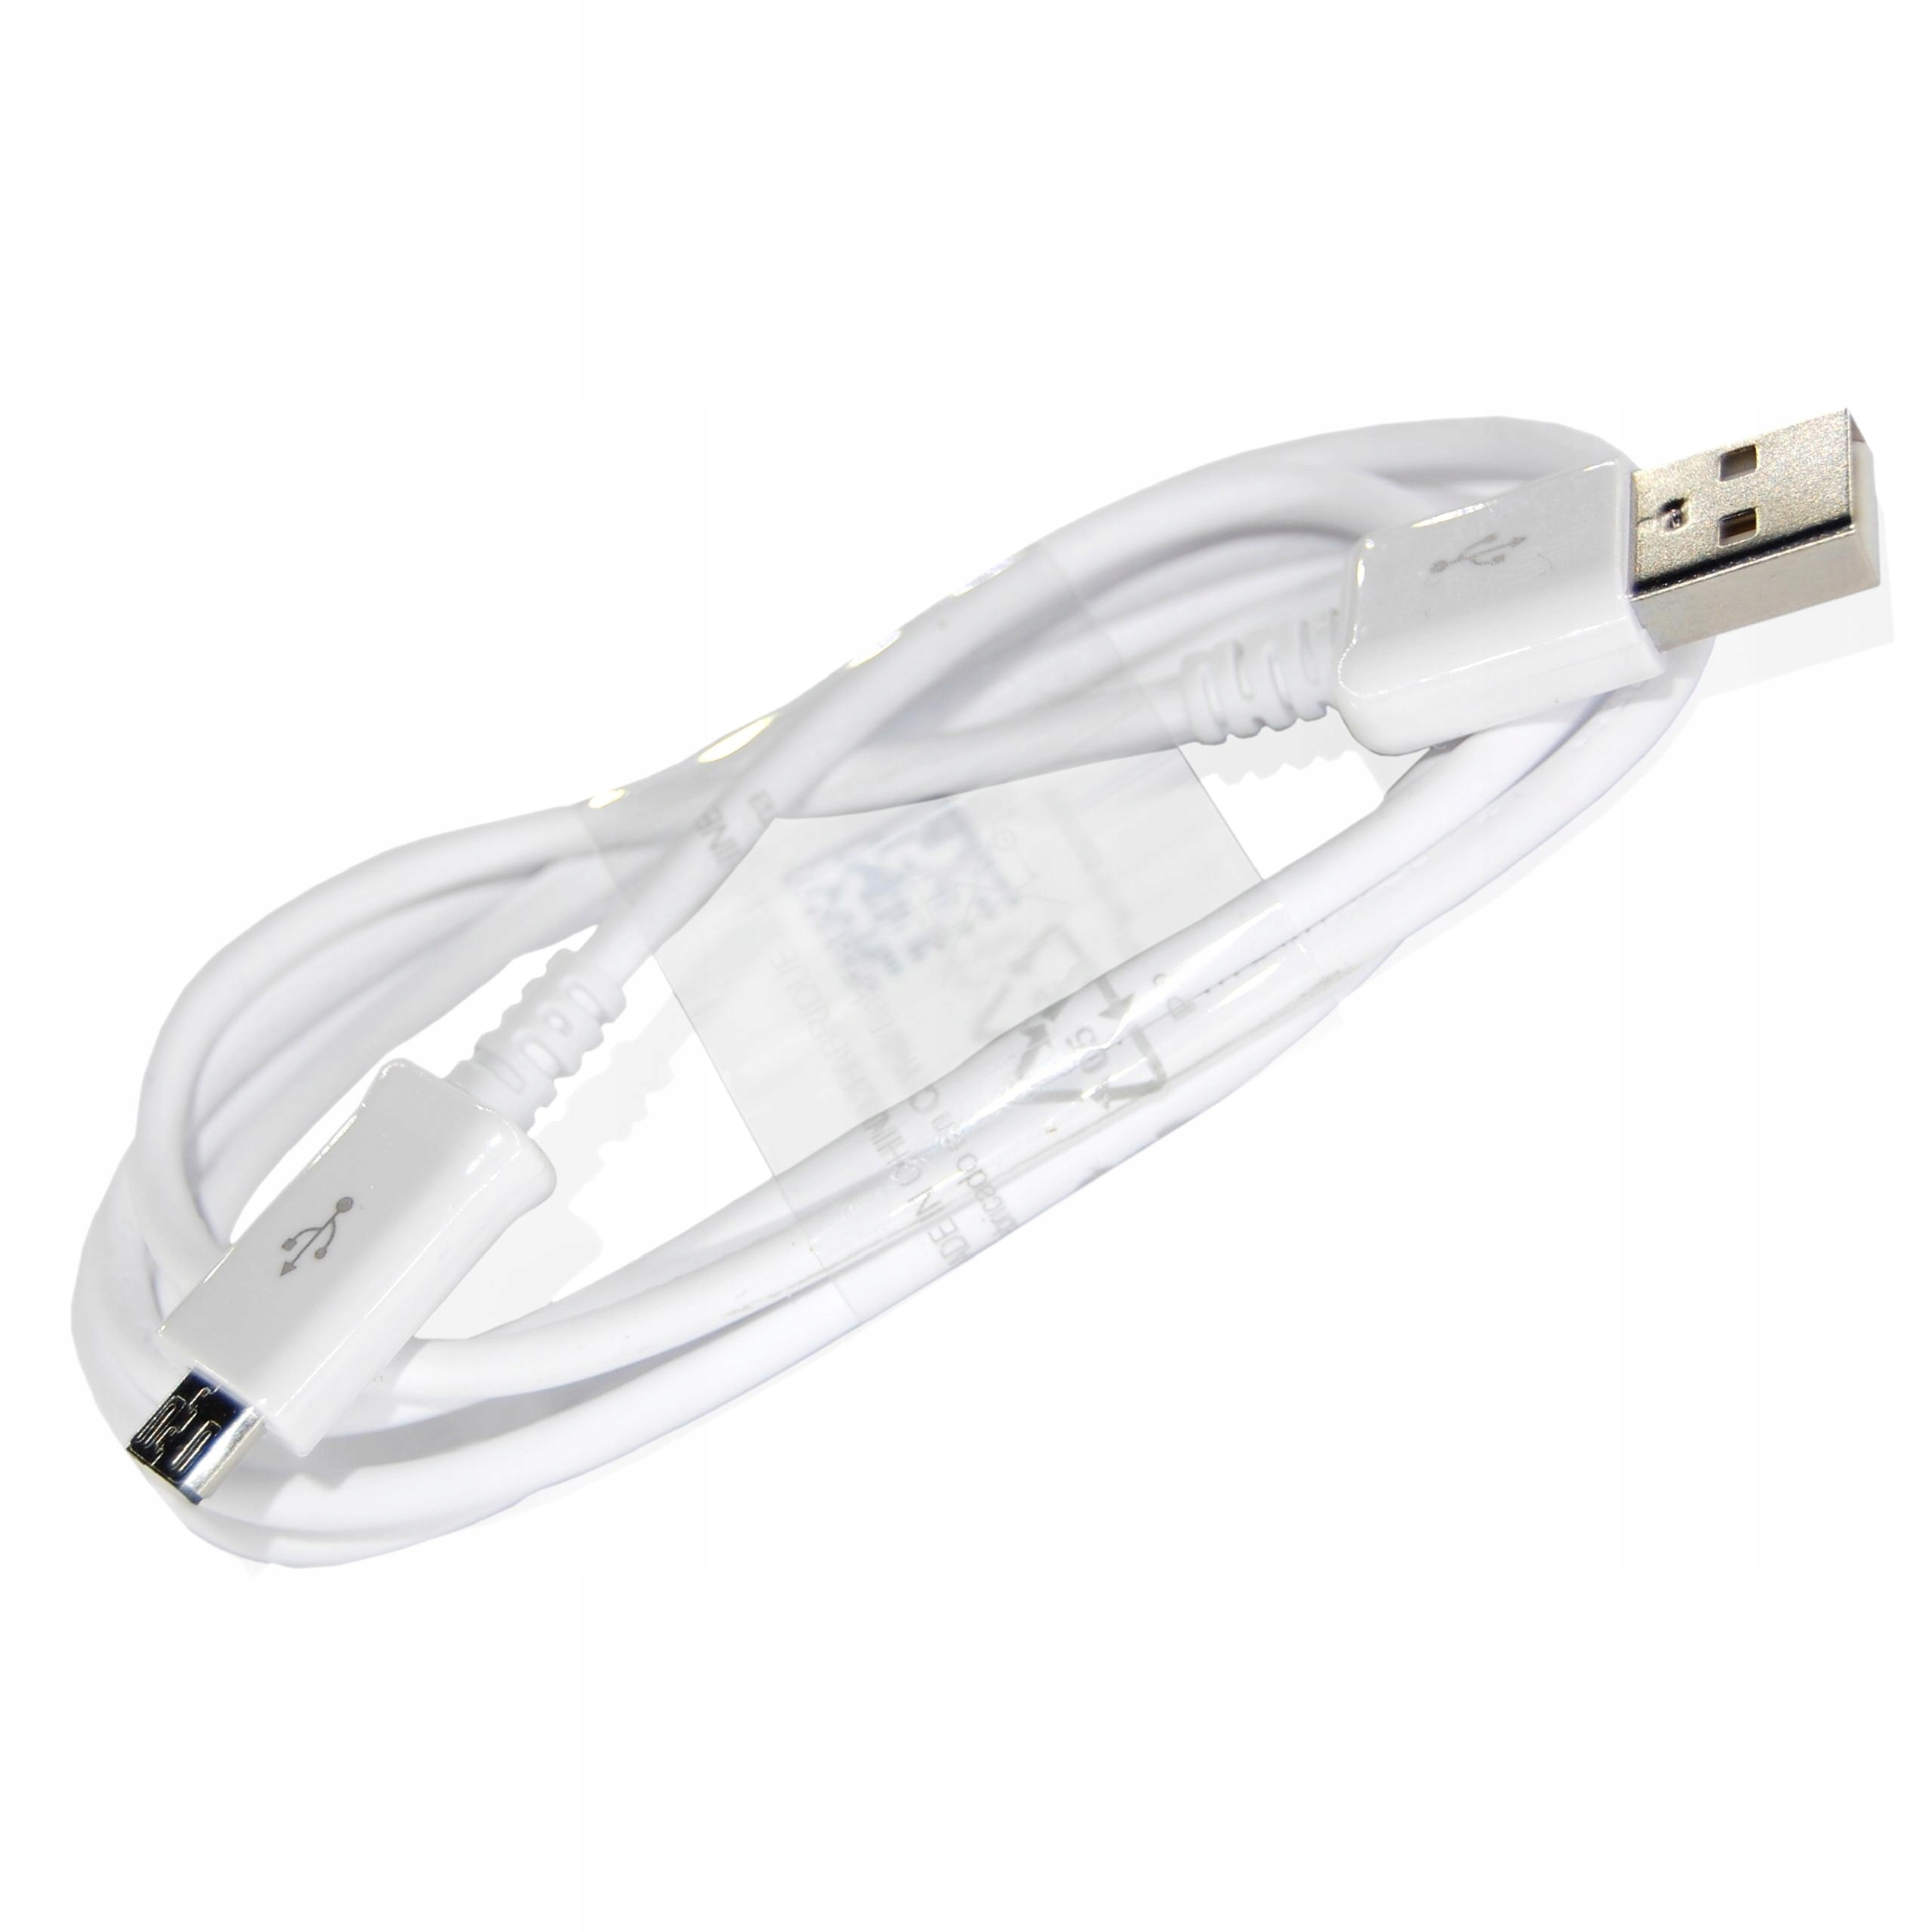 KABEL MICRO USB DO LG SPIRIT 3G DUAL SIM /X POWER